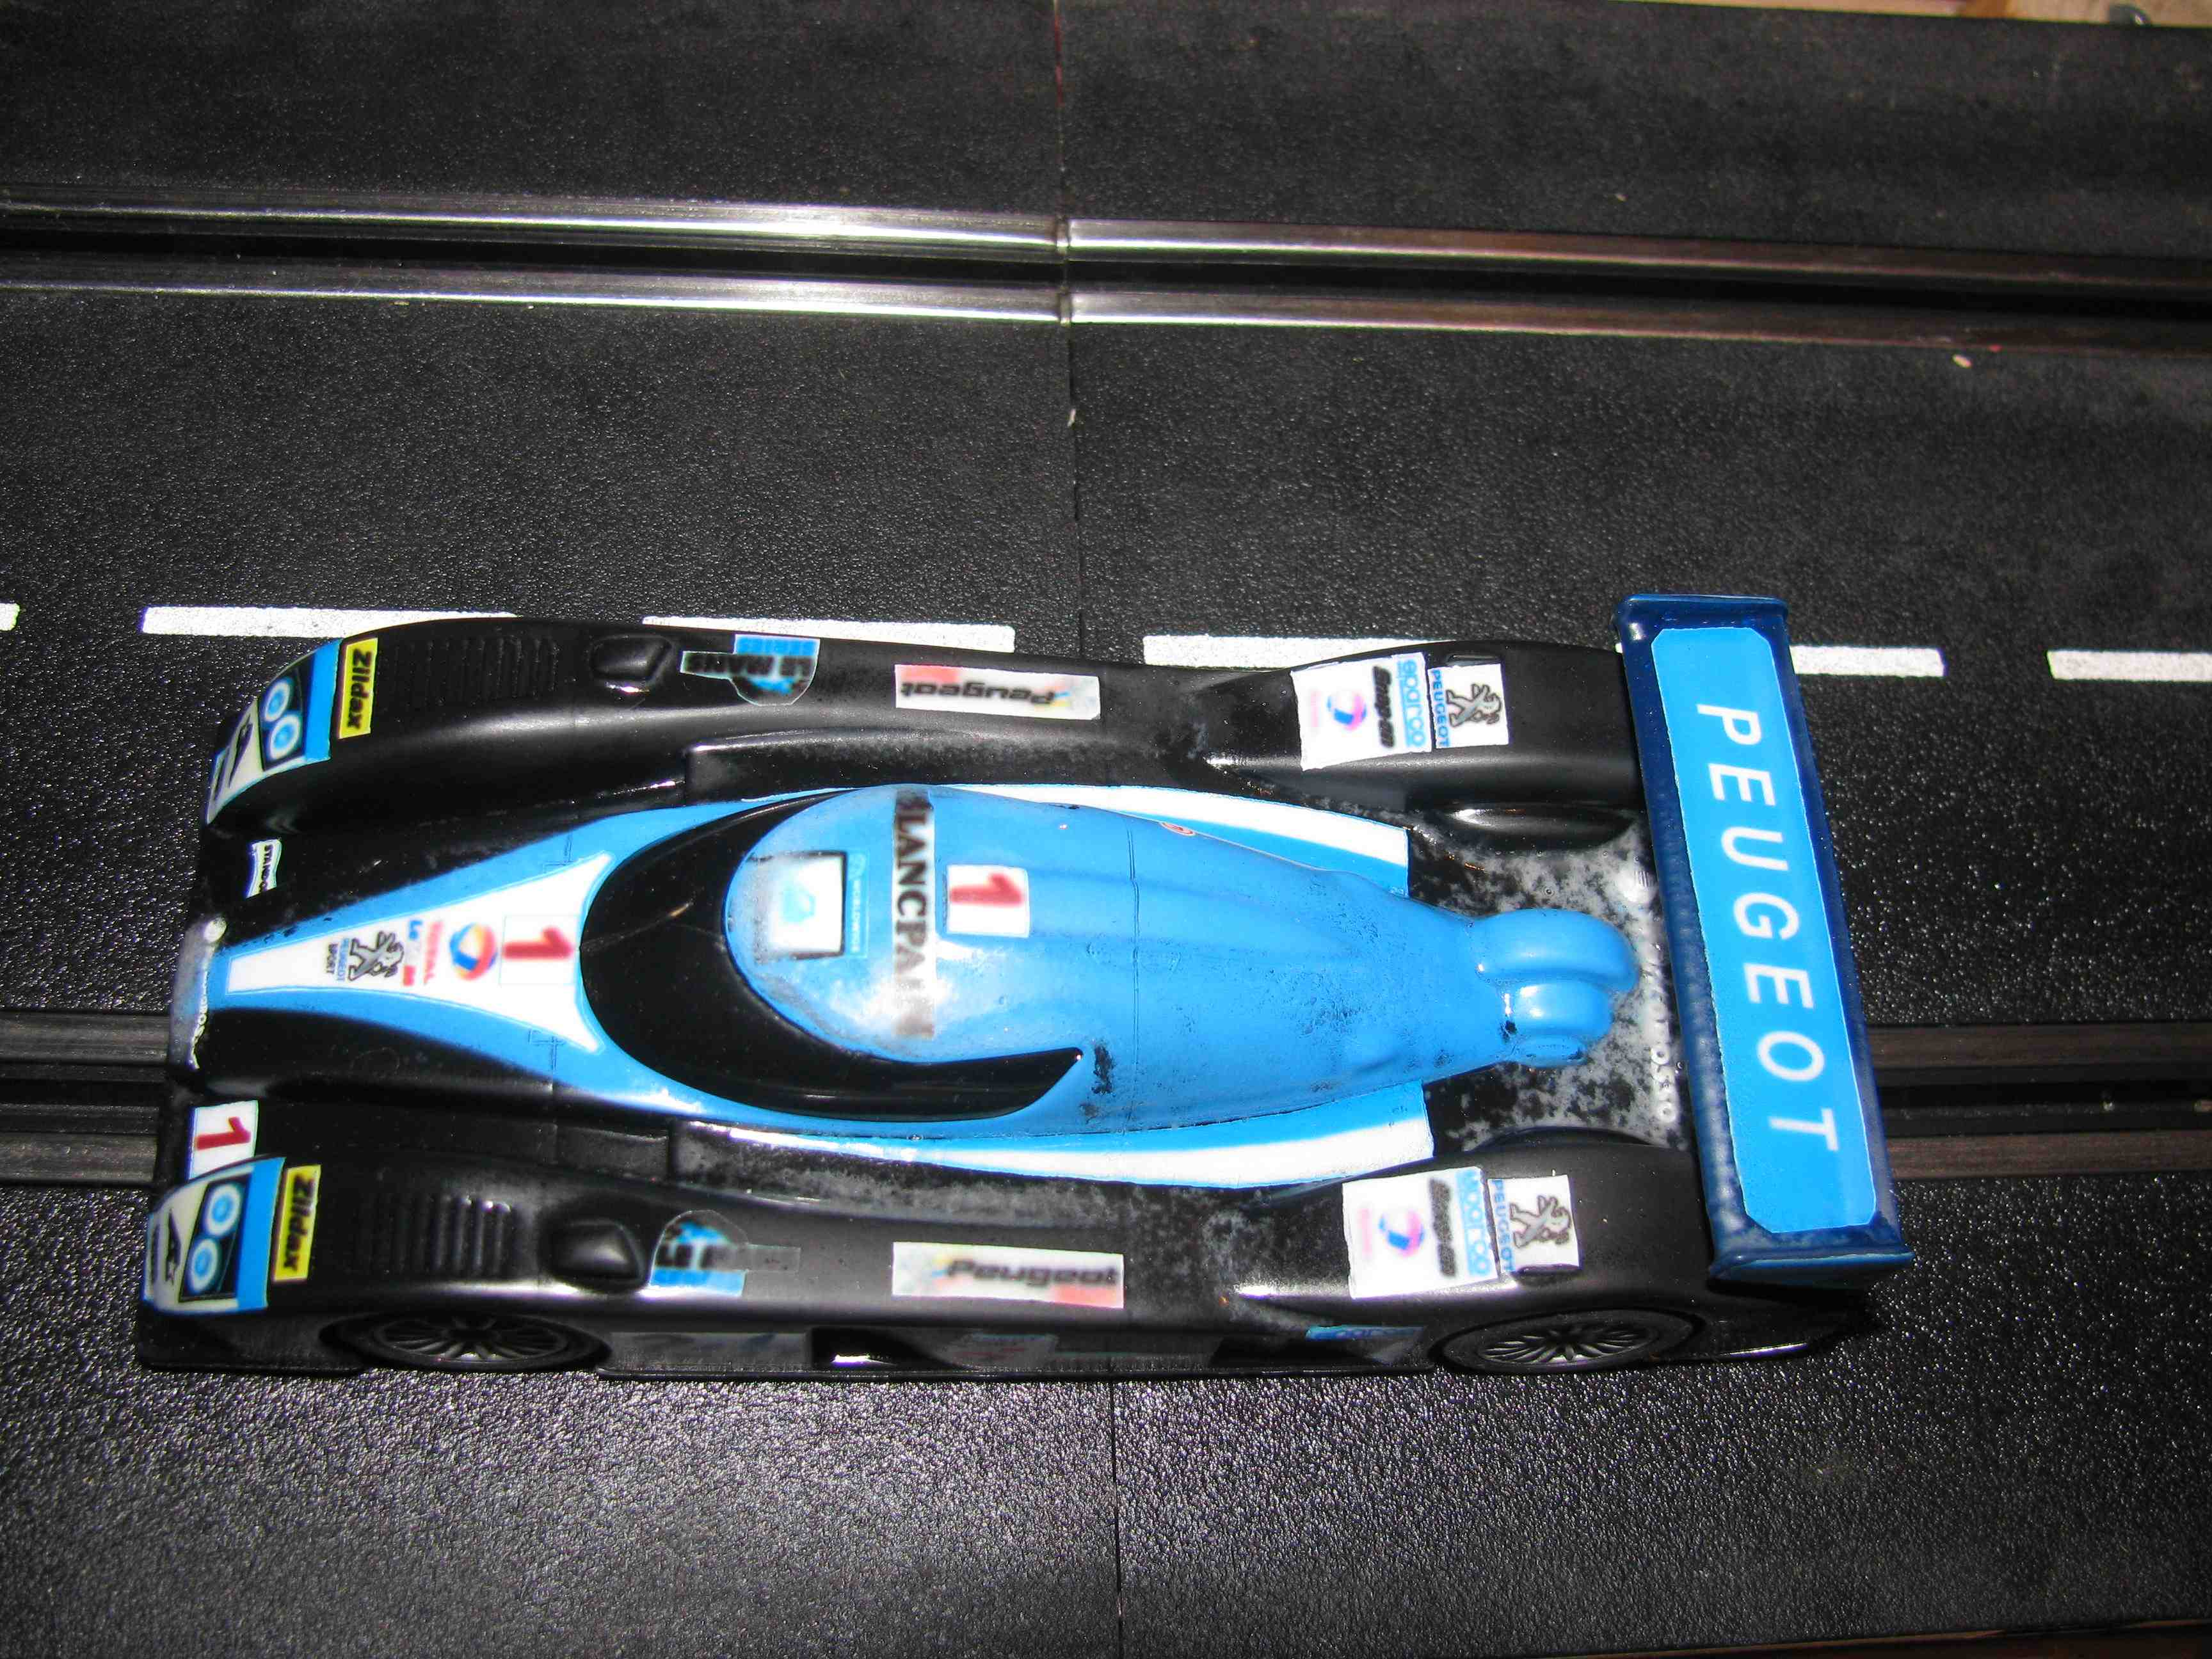 * SOLD * Hornby/SCX Peugeot LeMans LMPT Slot Car Racer 1/32 Scale – Car 1